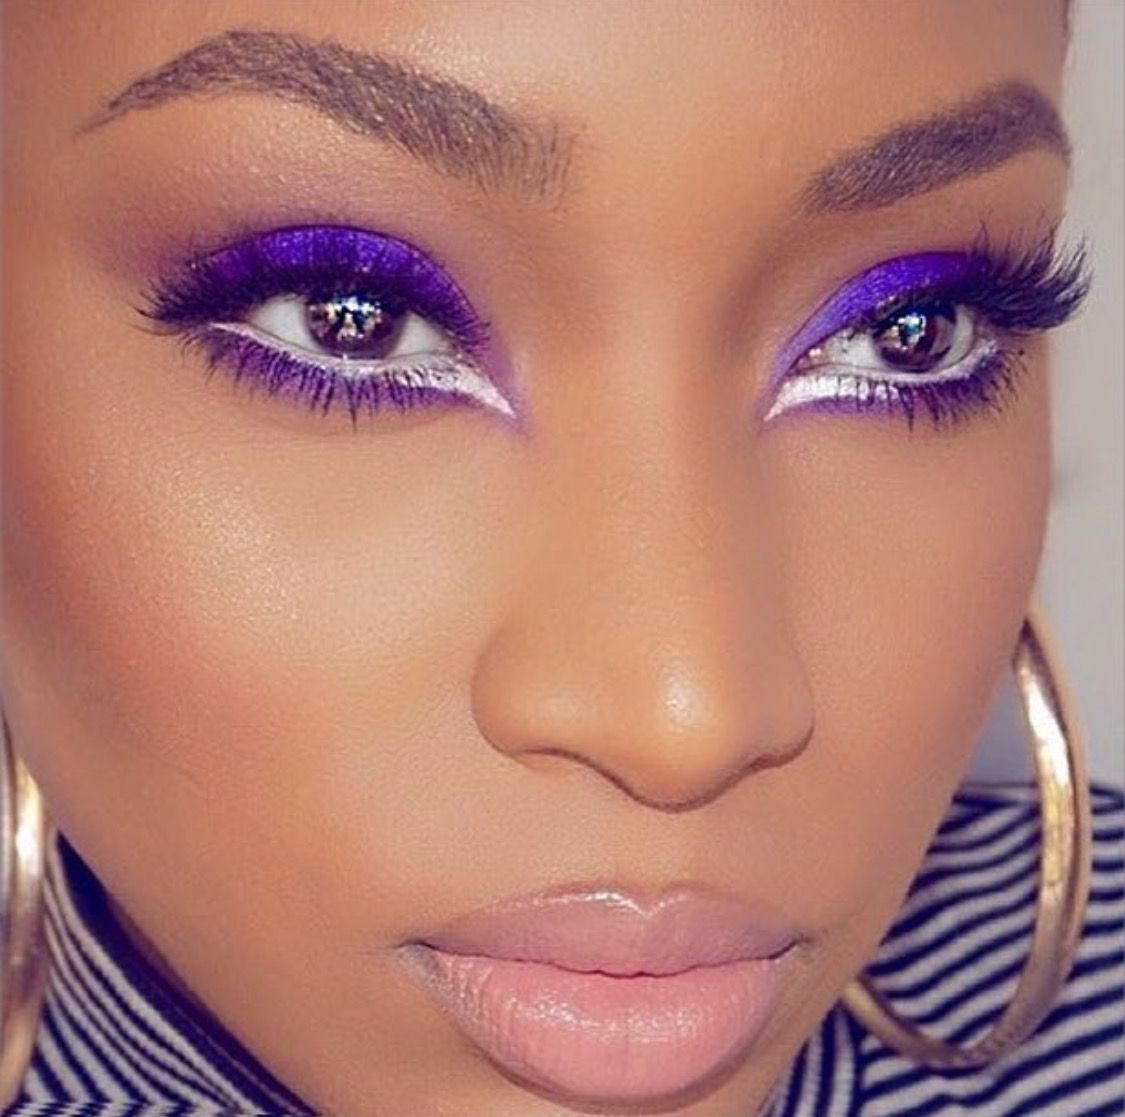 Makeup For Black Women | Best Makeup Products, Gorgeous